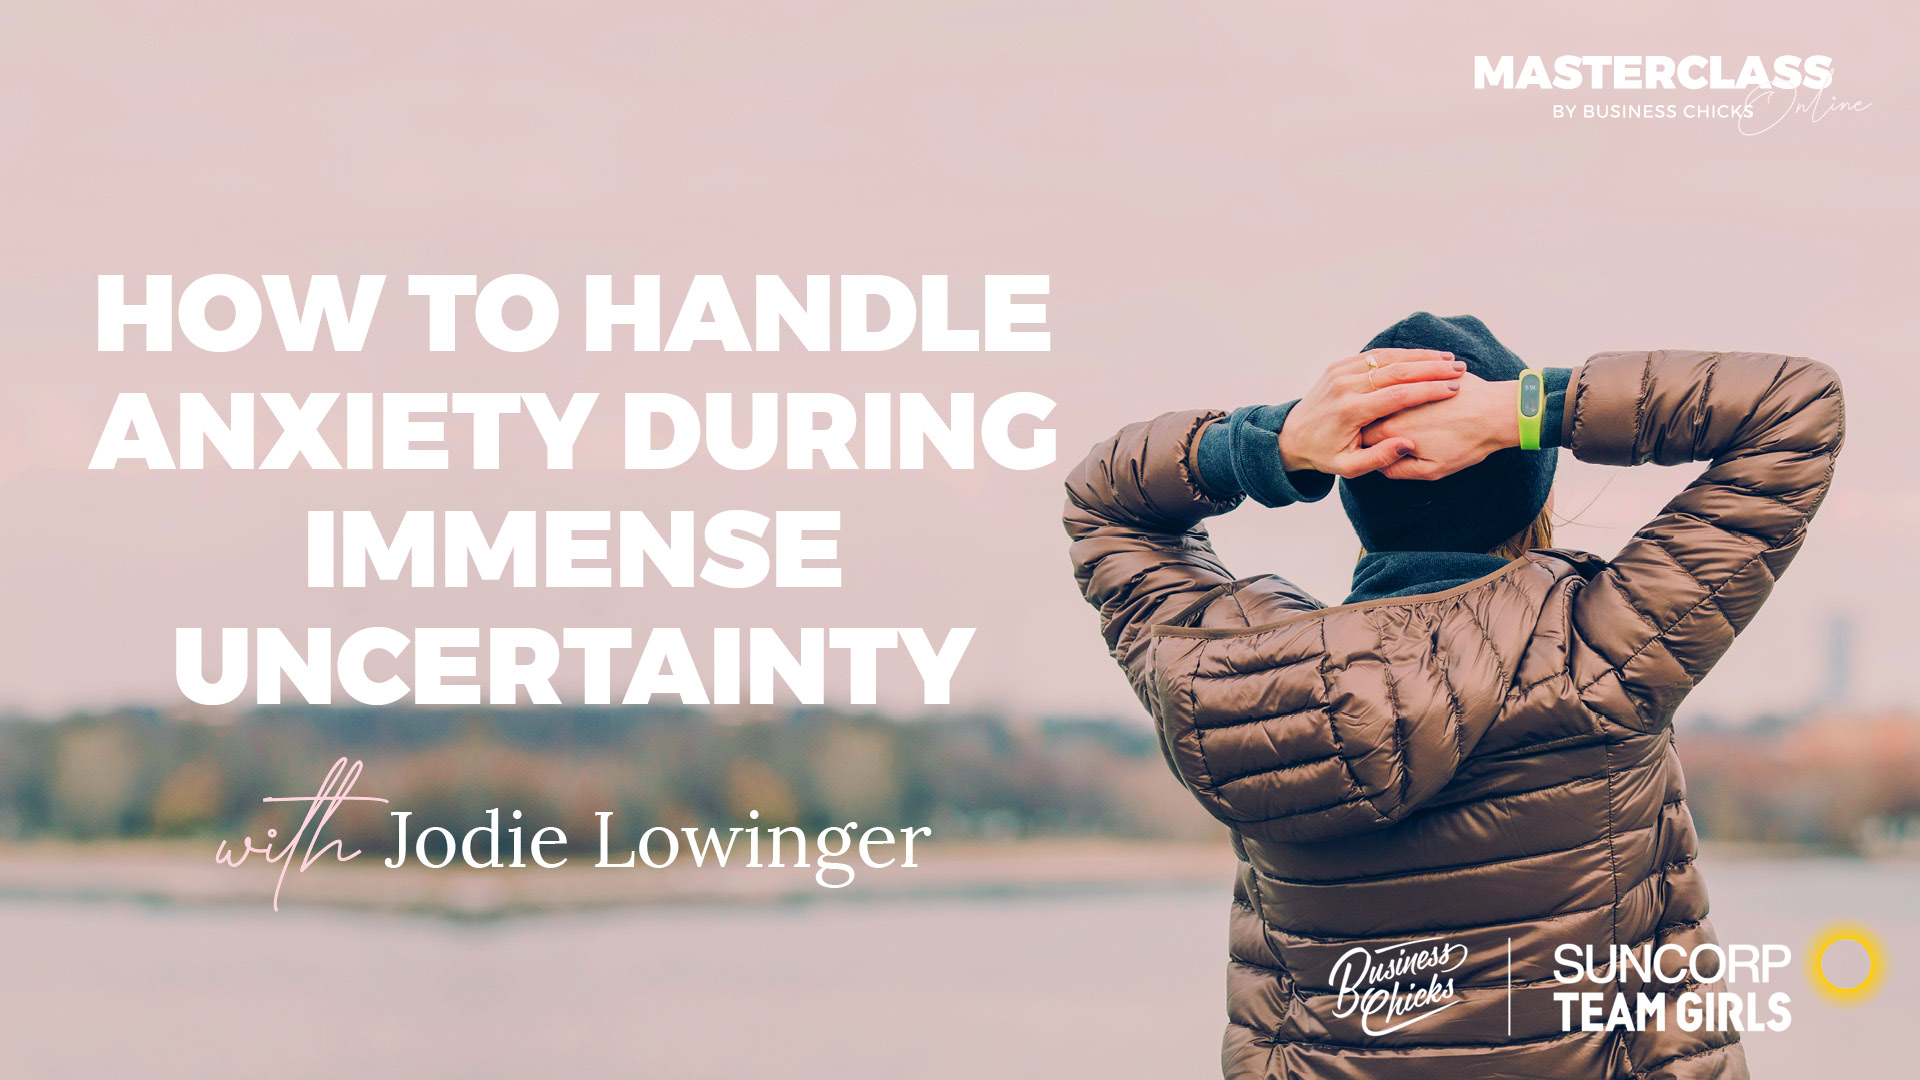 Masterclass: How To Handle Anxiety During Immense Uncertainty